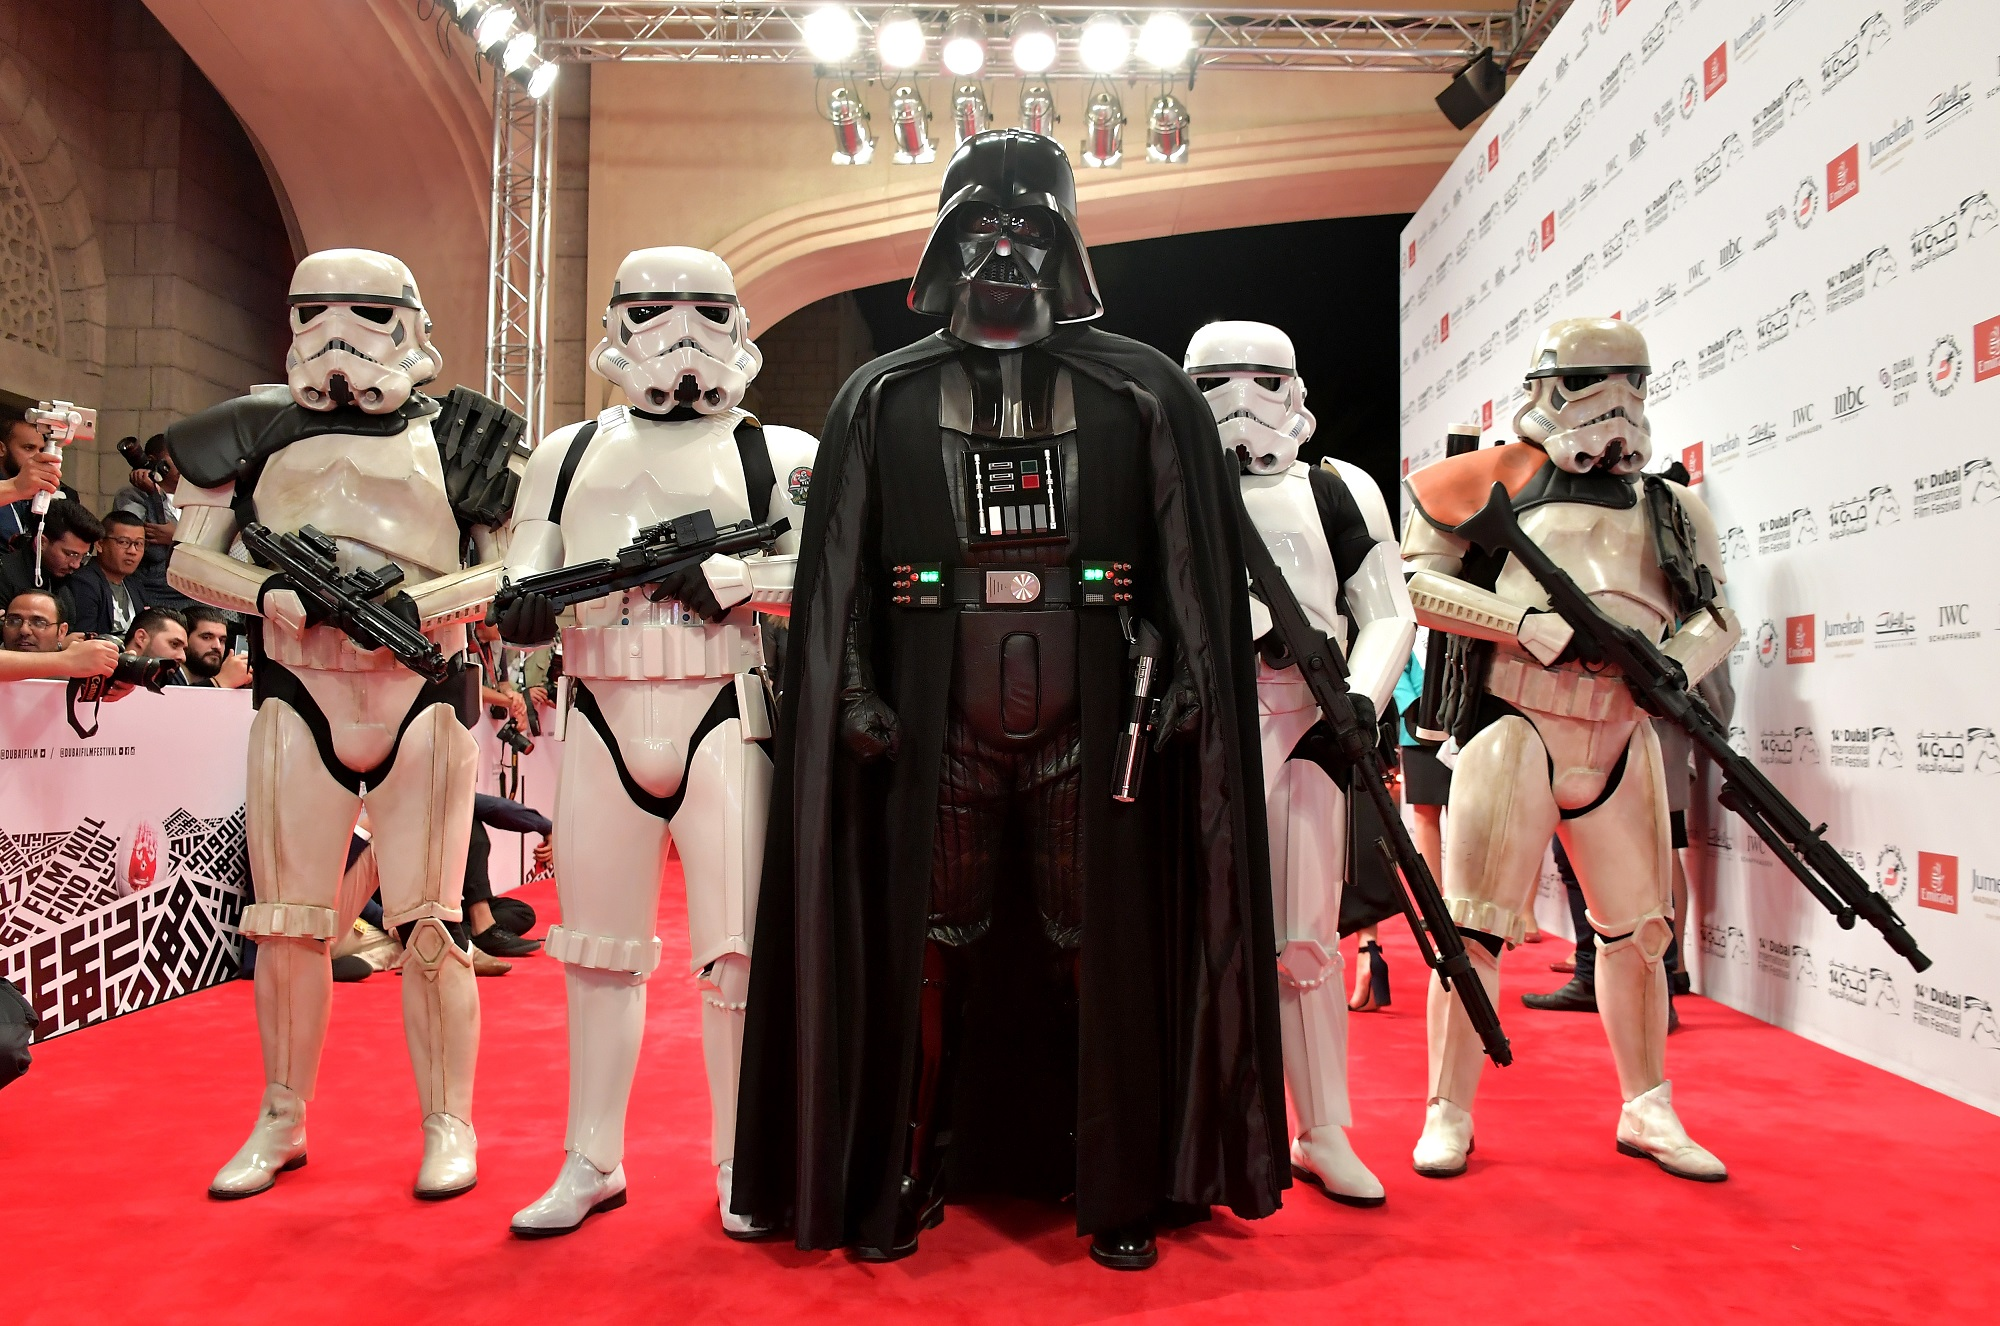 The closing ceremony of DIFF was marked with the premier of 'The Last Jedi' in which the cast made entry on the red carpet dressed in their best Star Wars costume.